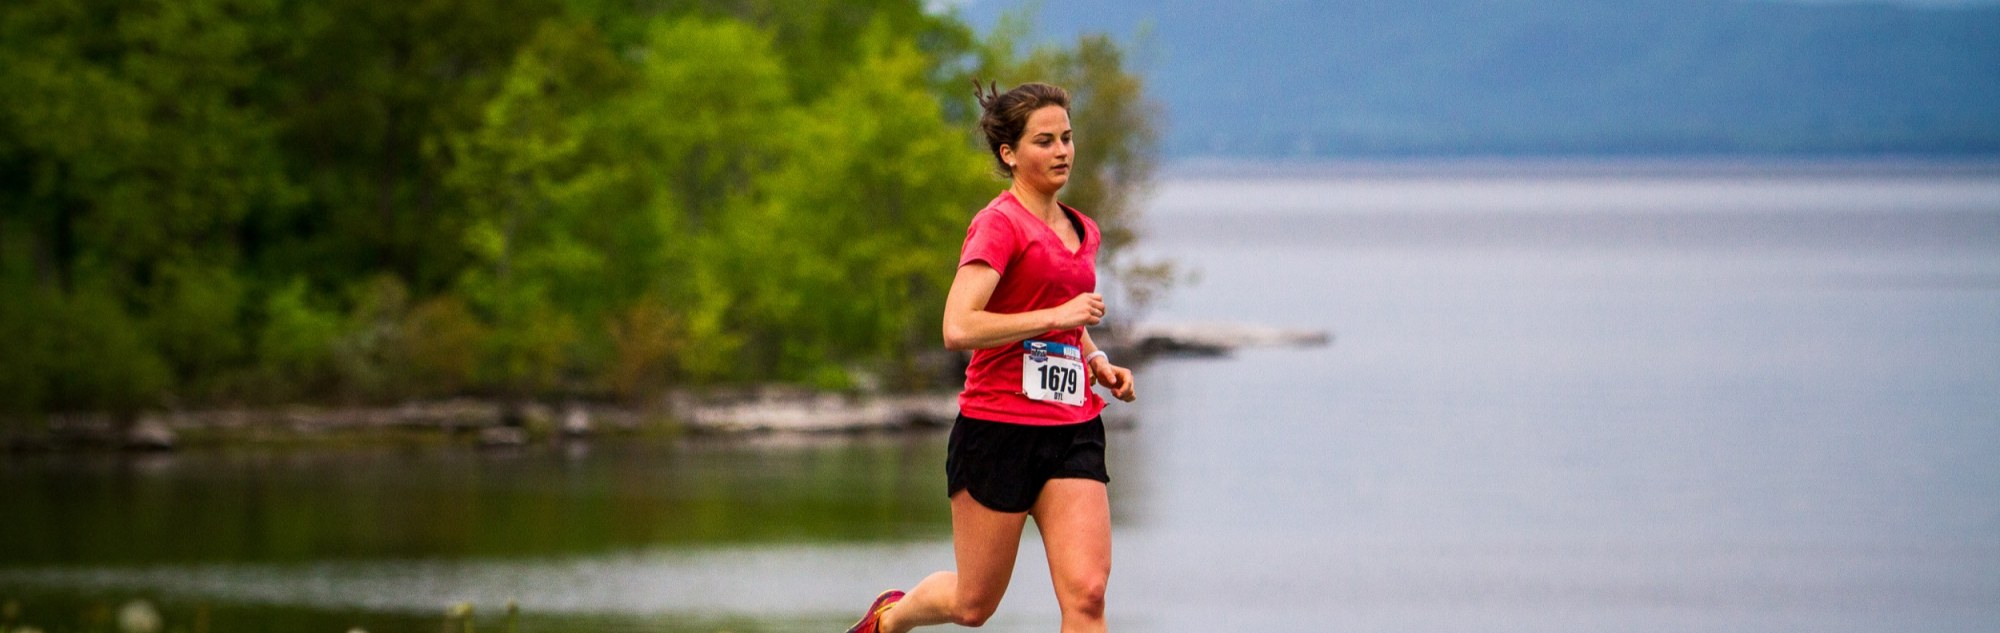 woman running in front of lake